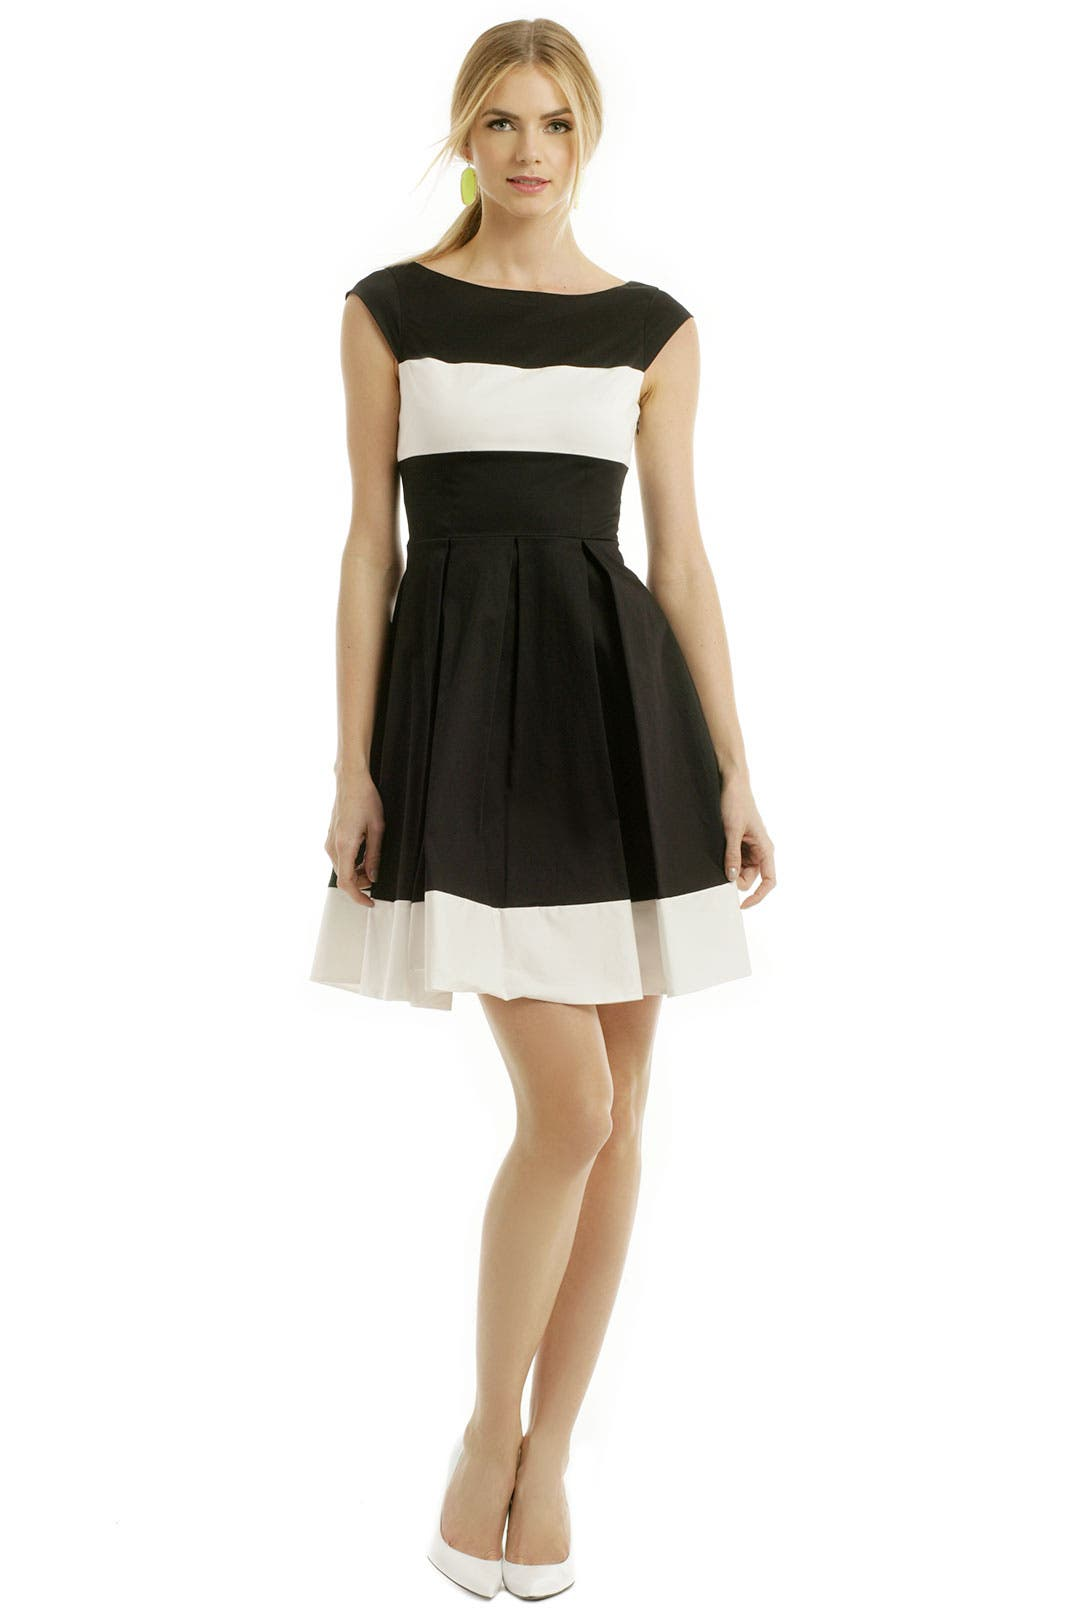 Adette Dress by kate spade new york